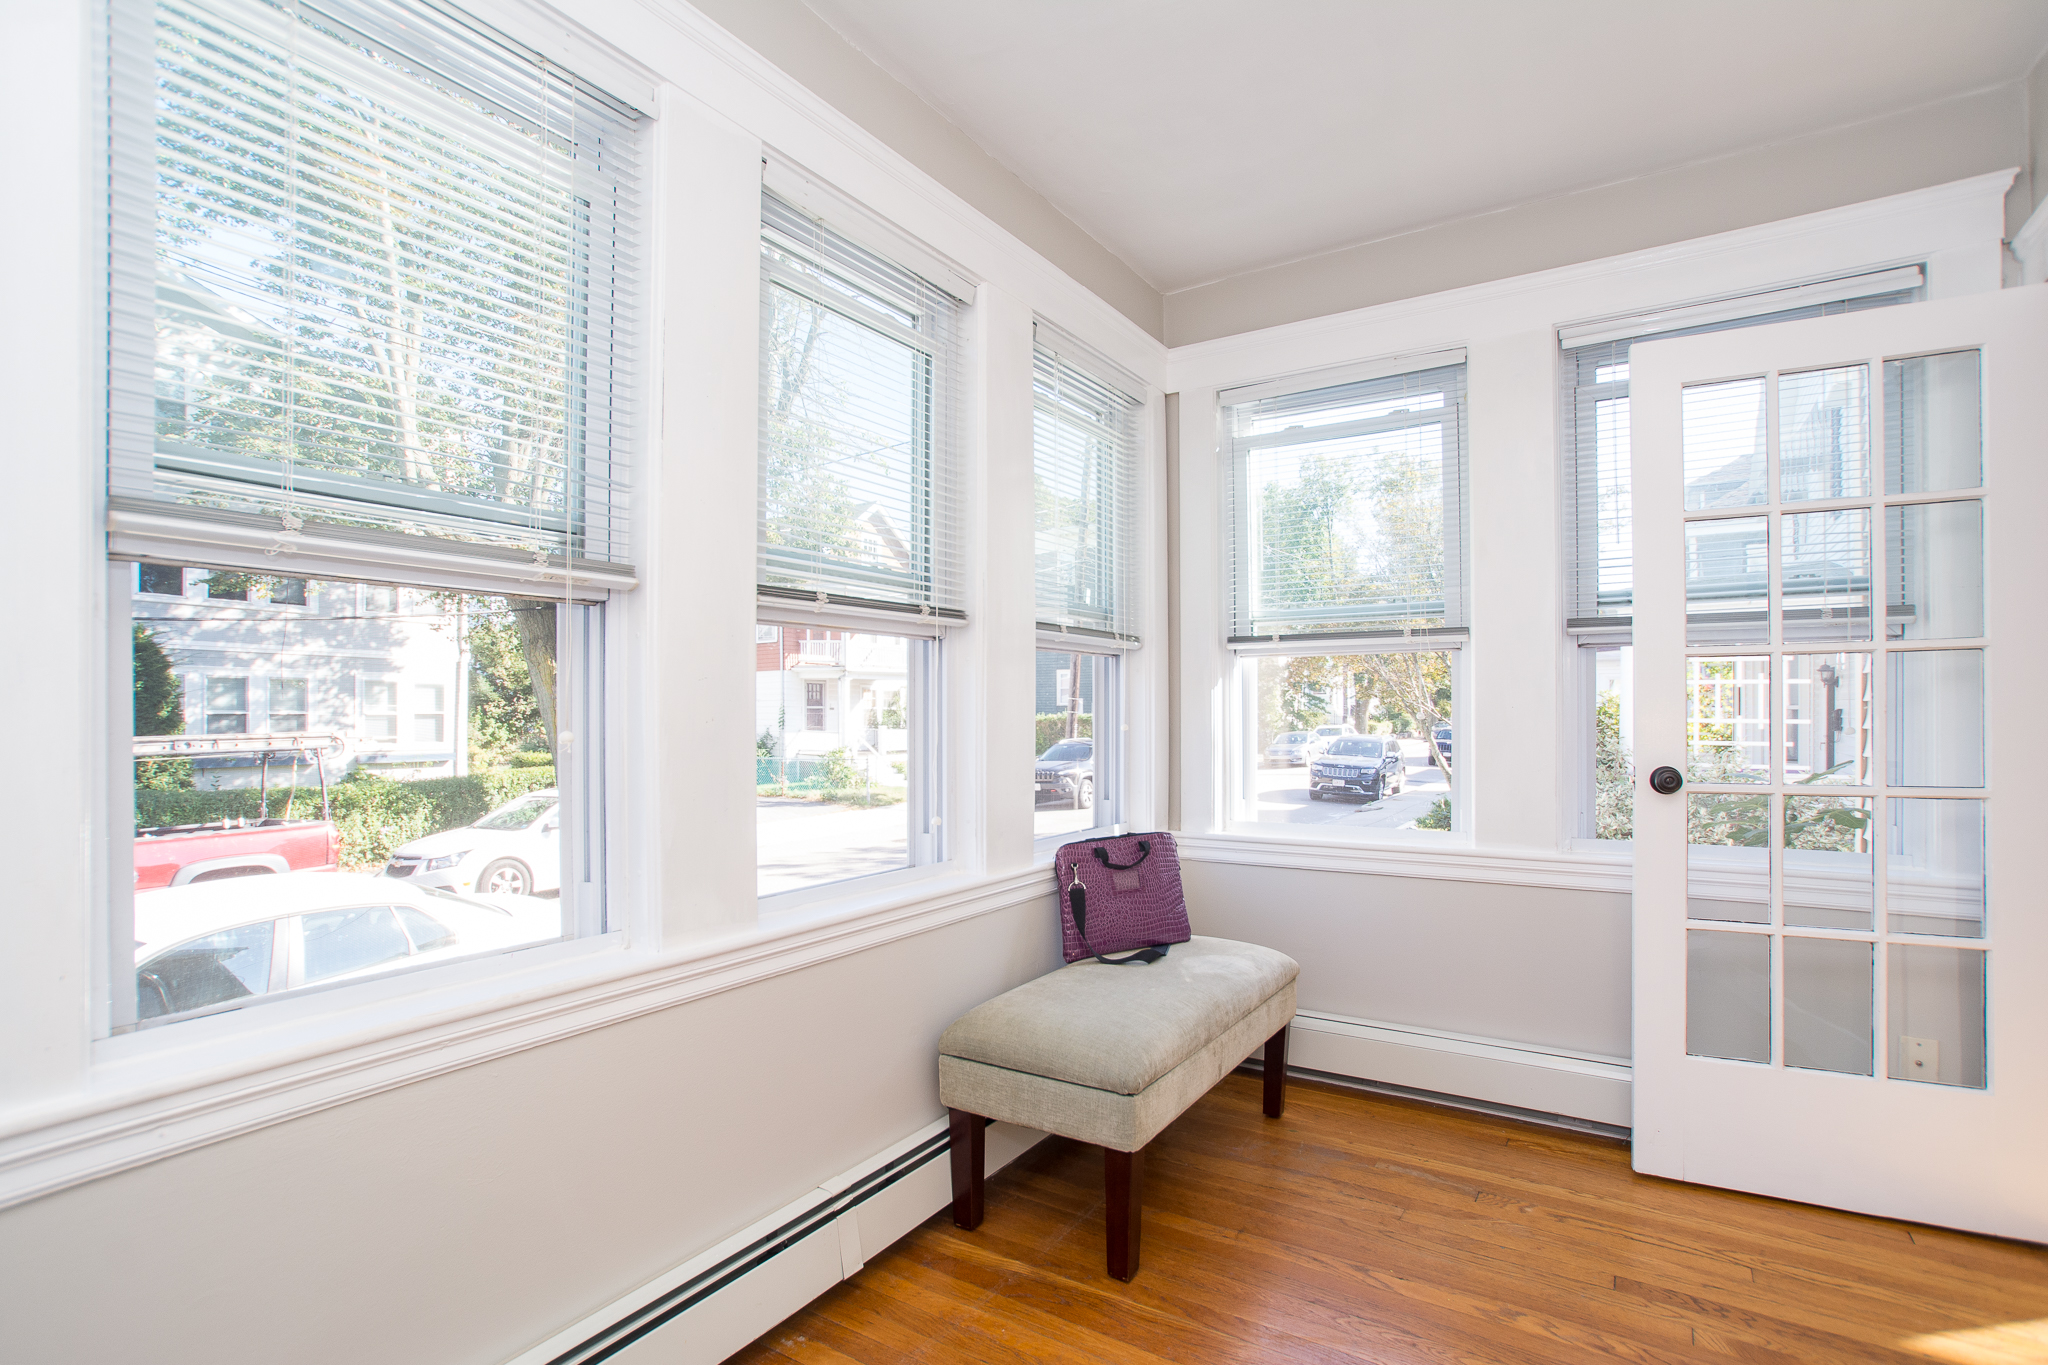 86 Turner Street; #1, Brighton, MA - Sunroom